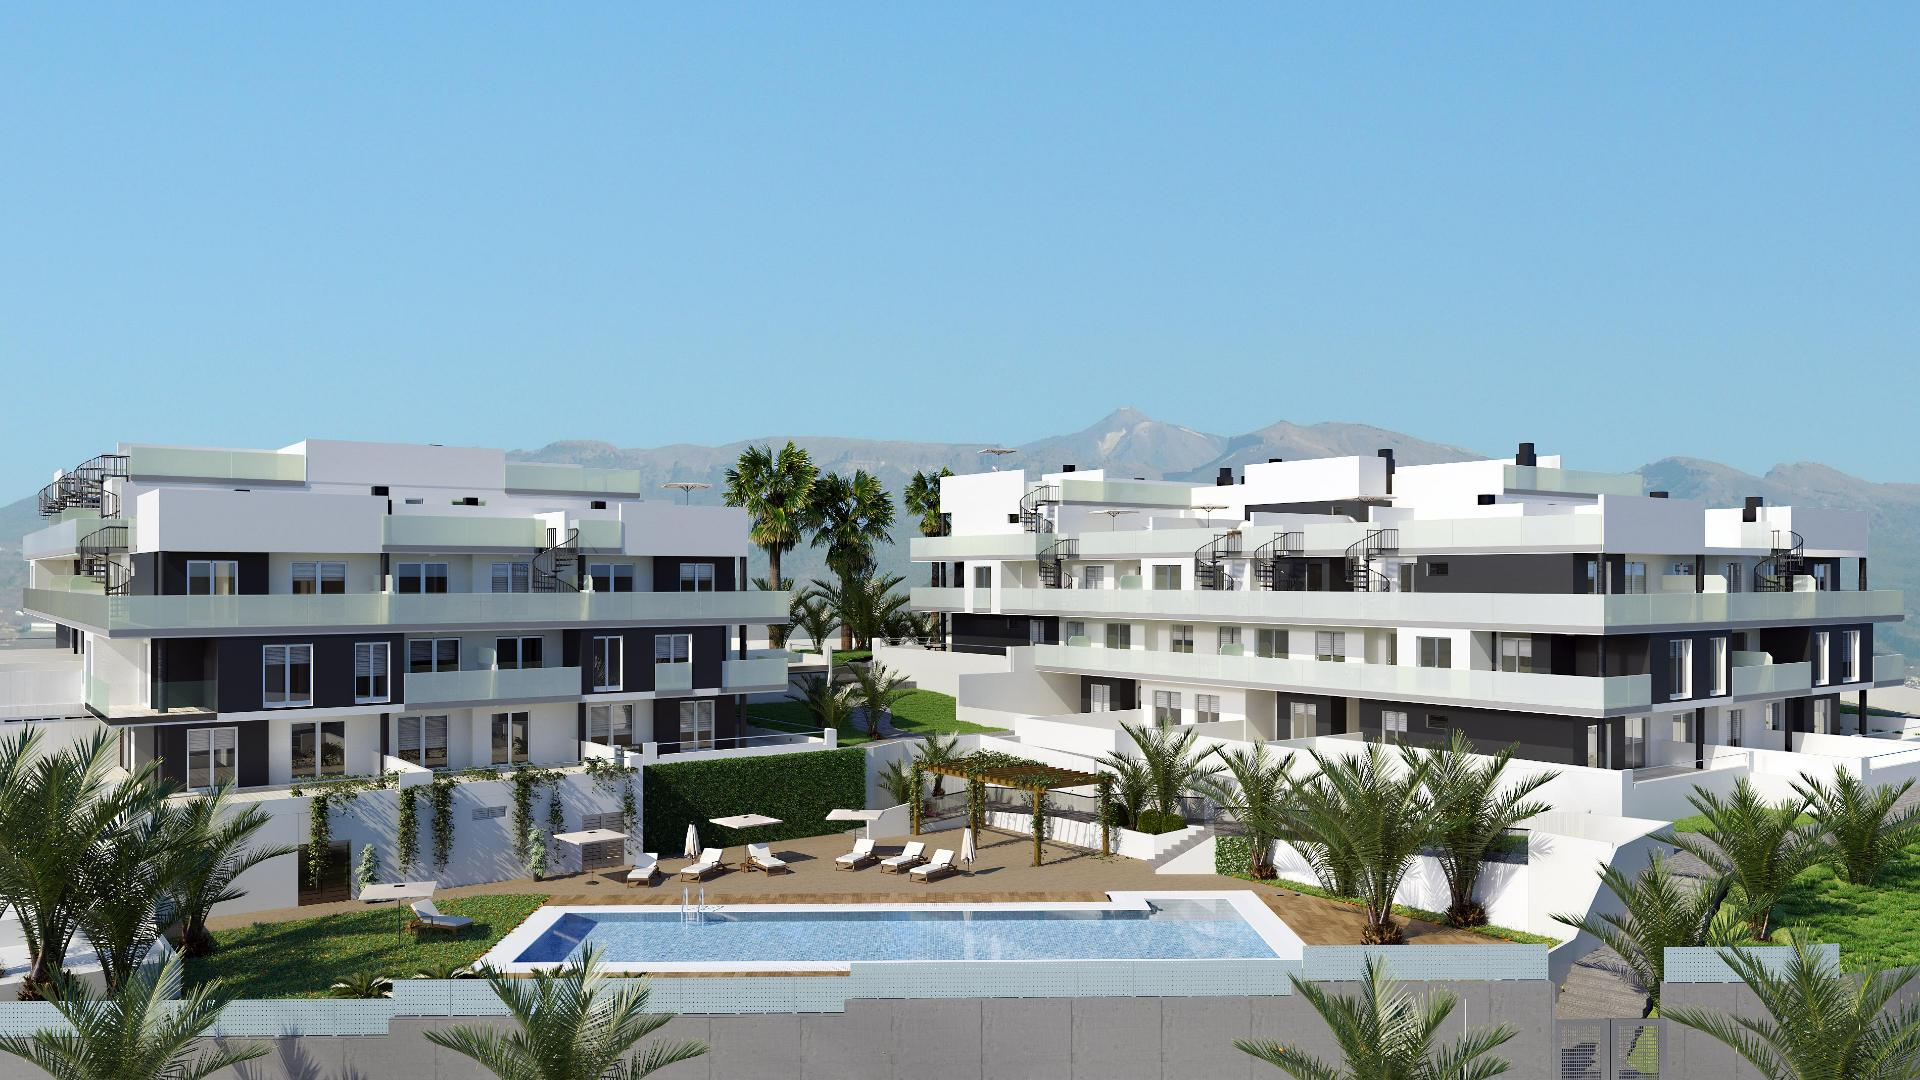 As is the case with the other residential developments in Sotavento, La Tejita .... more info